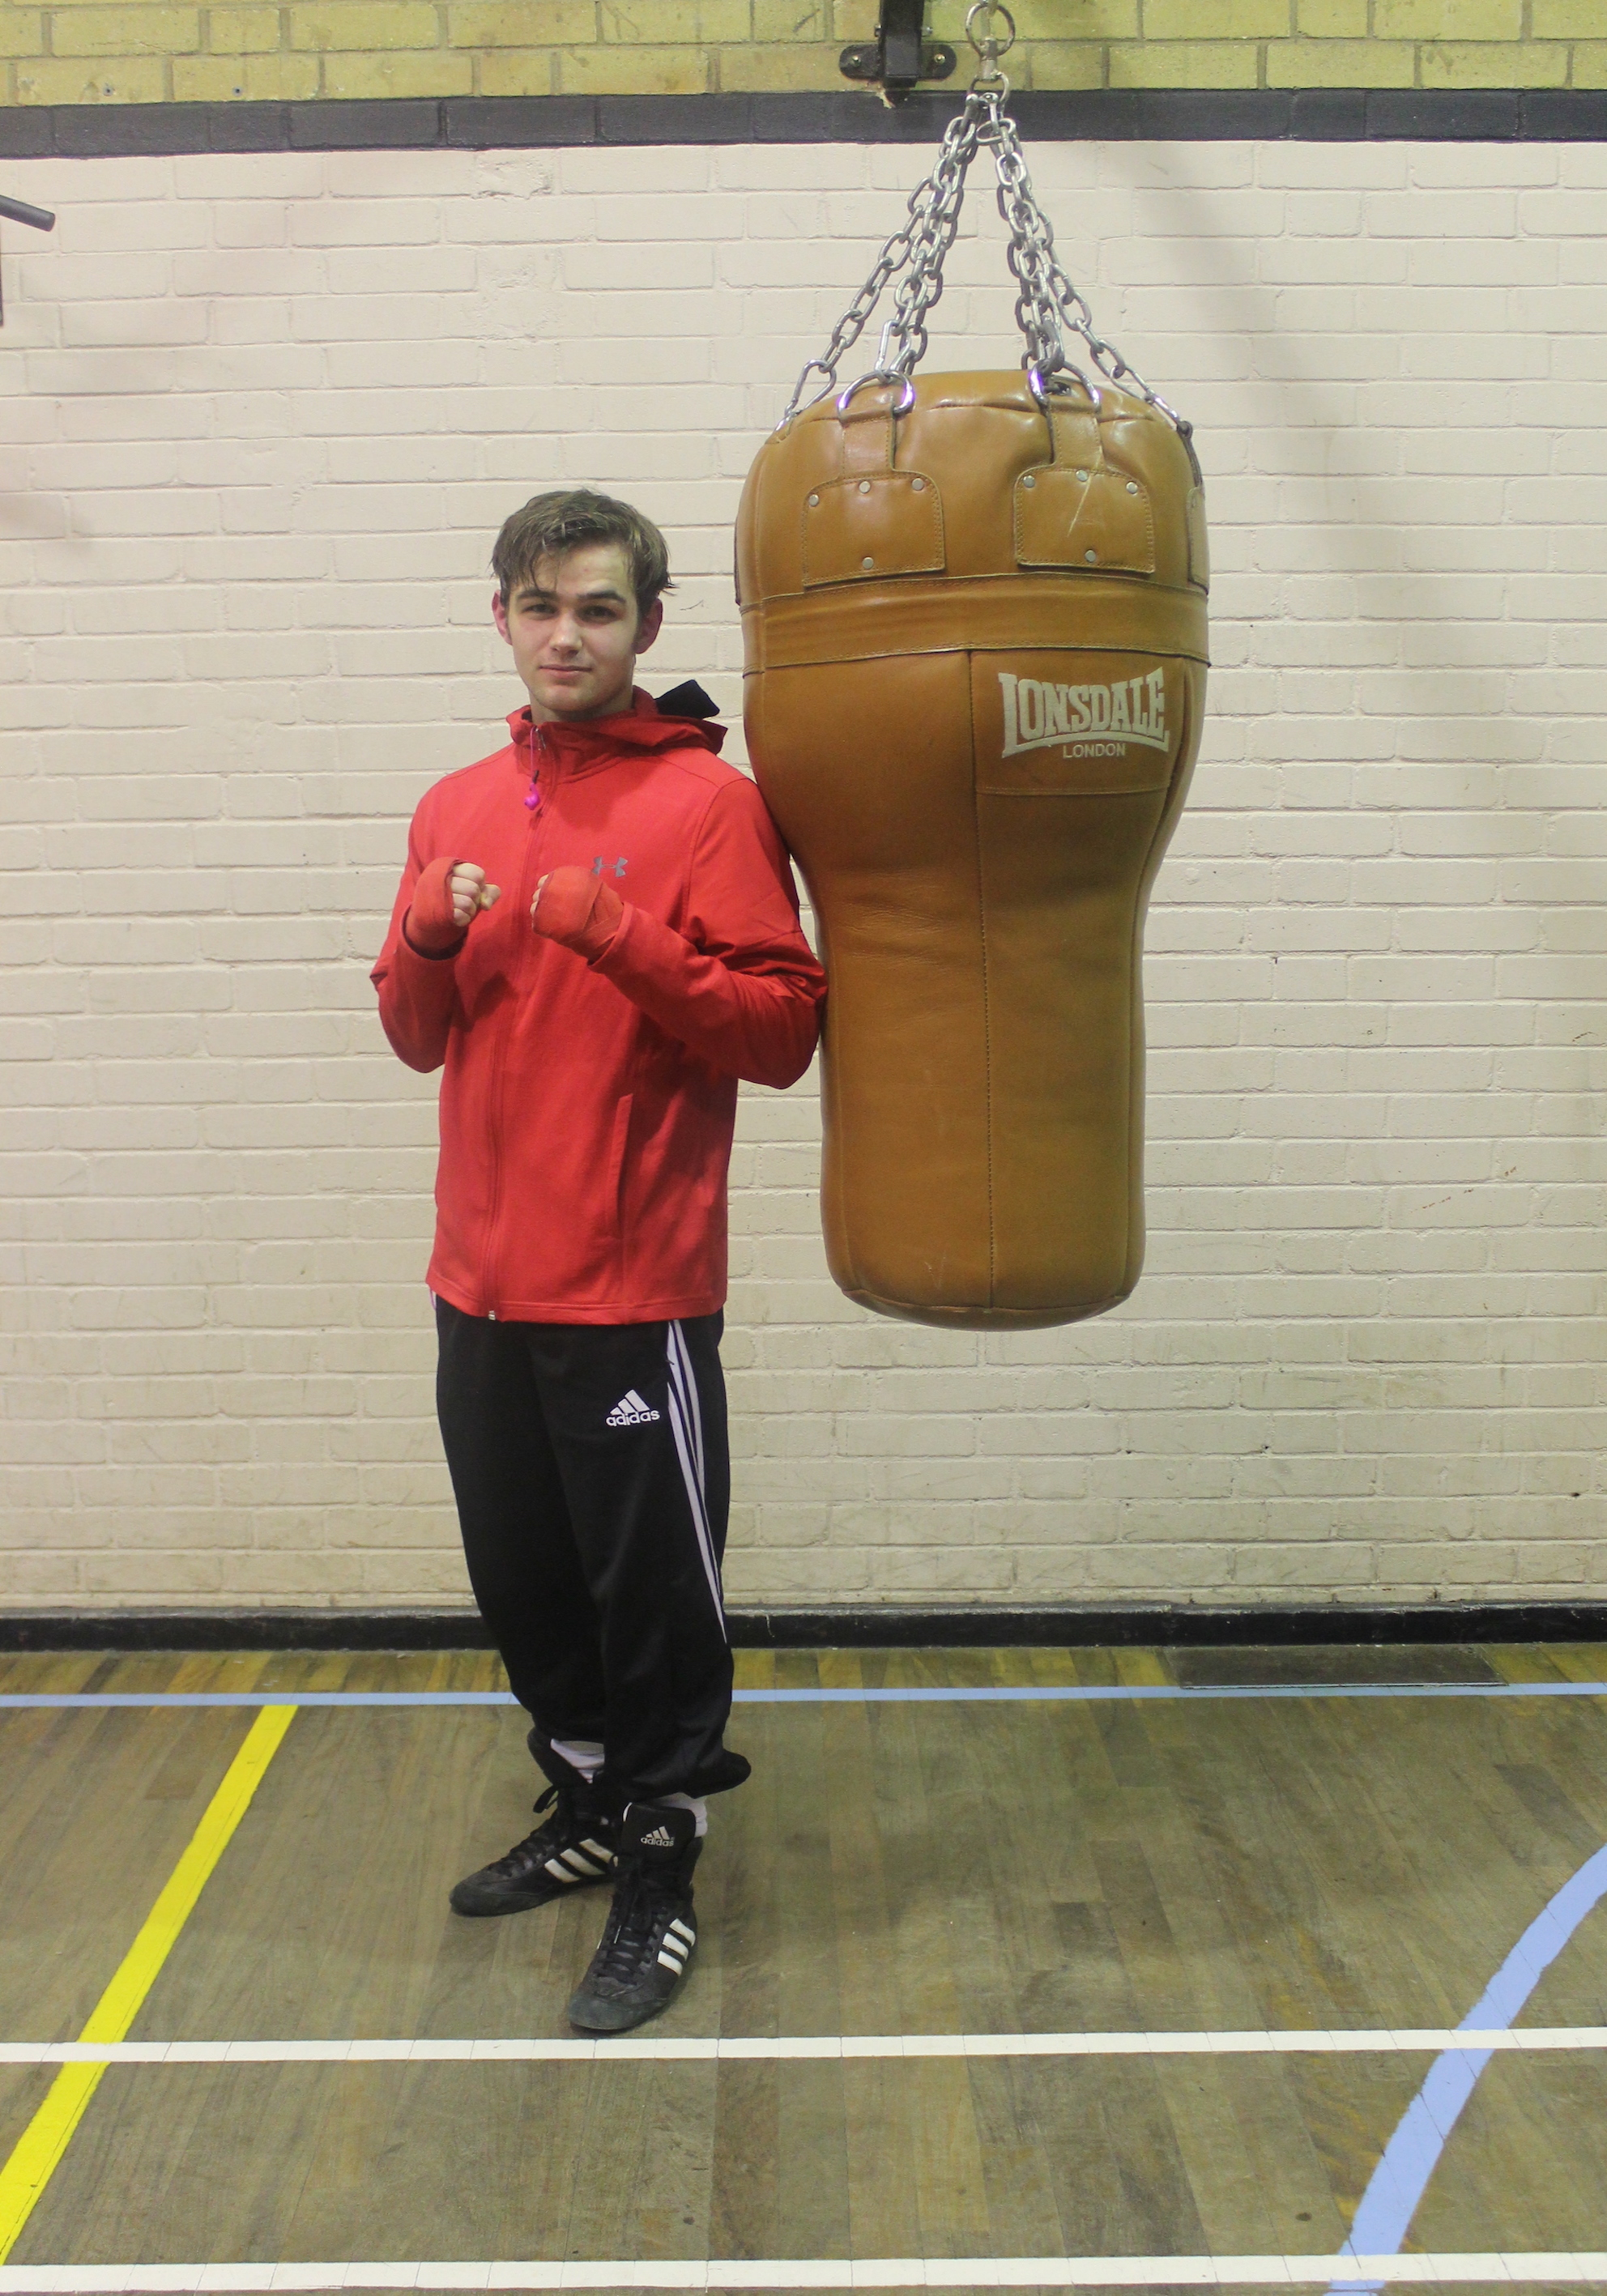 Les Hill - Senior Boxer  @ Blackbird Leys Amateur Boxing Club Oxford